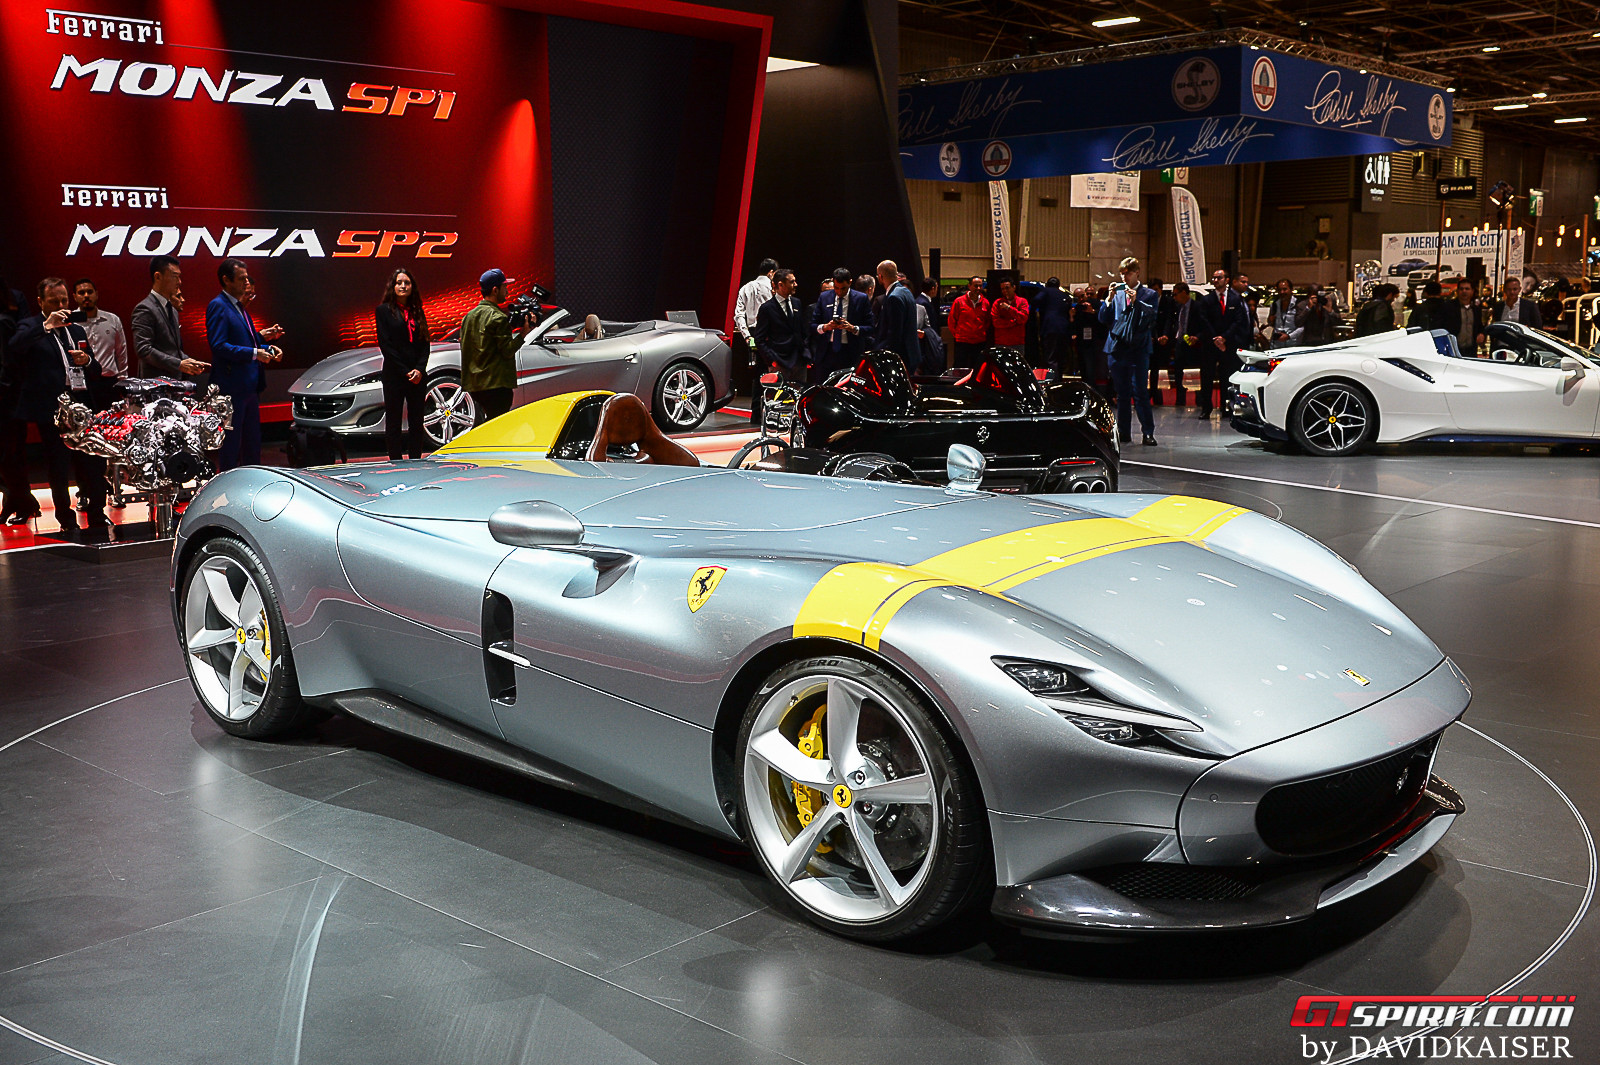 Details Emerge about Ferrari Monza Cost and Production Run